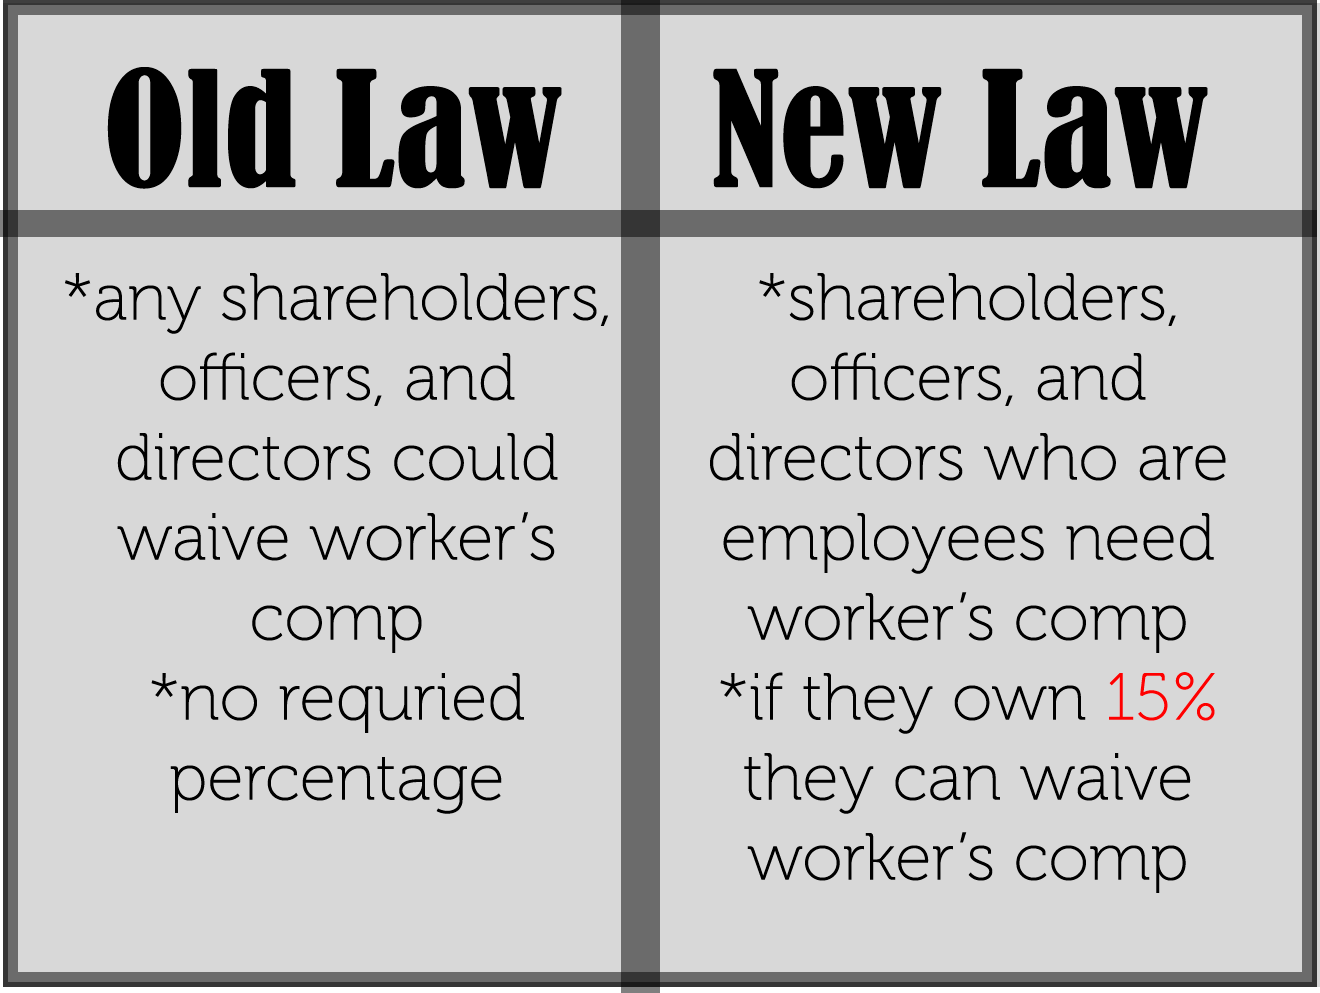 A small comparison of the major changes in the worker's comp laws.